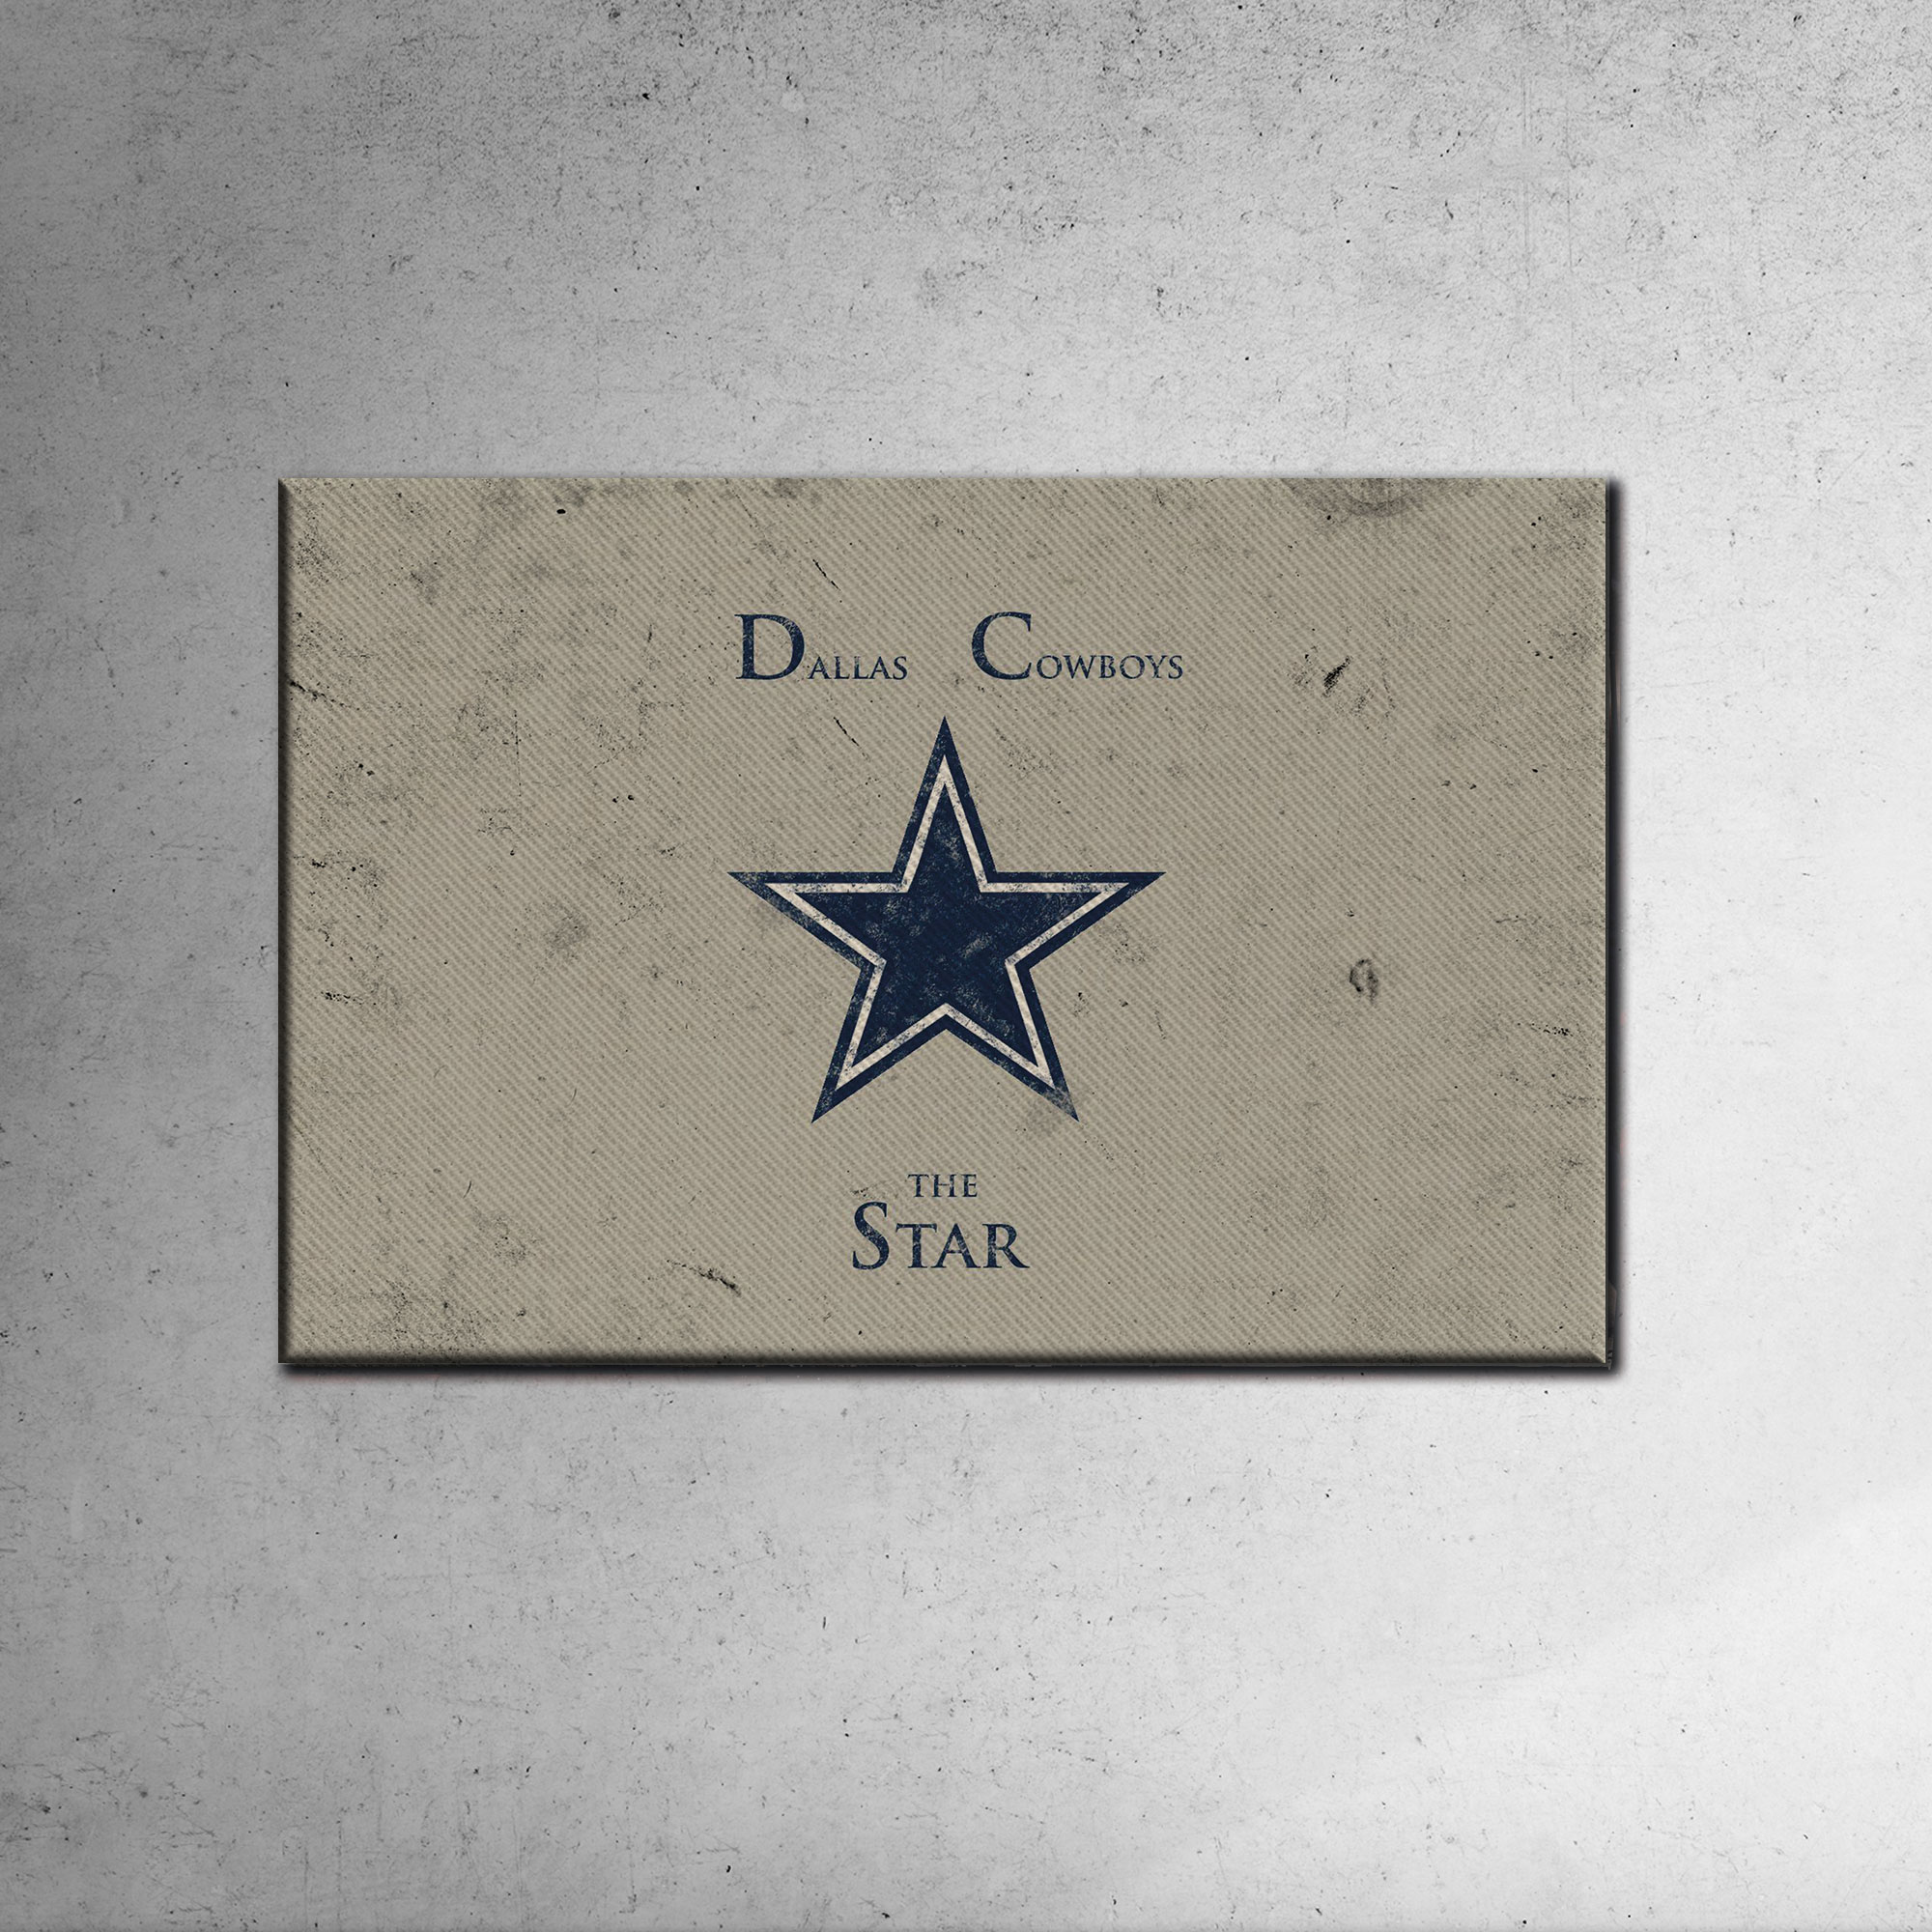 Dallas Cowboys Canvas Tablo (Nba-canvas-dallas)